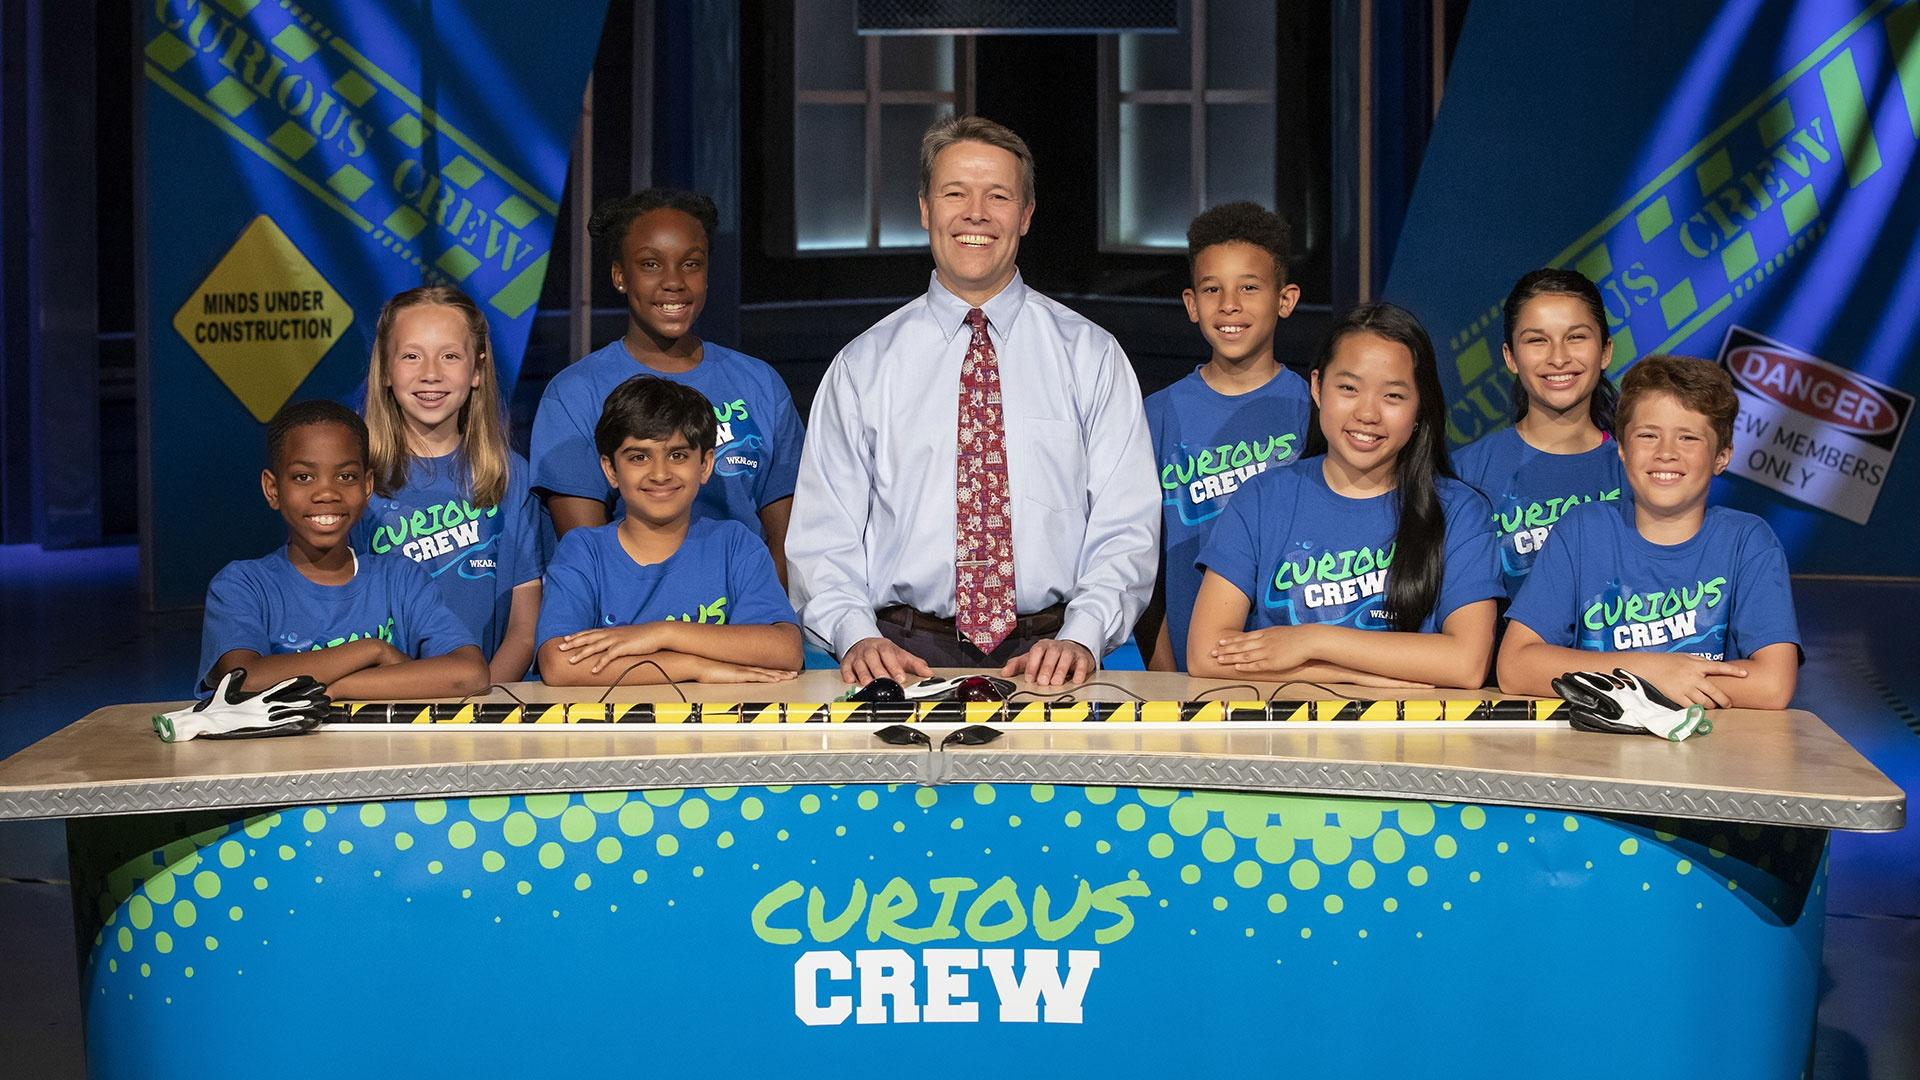 Dr. Rob Stephenson with the Curious Crew